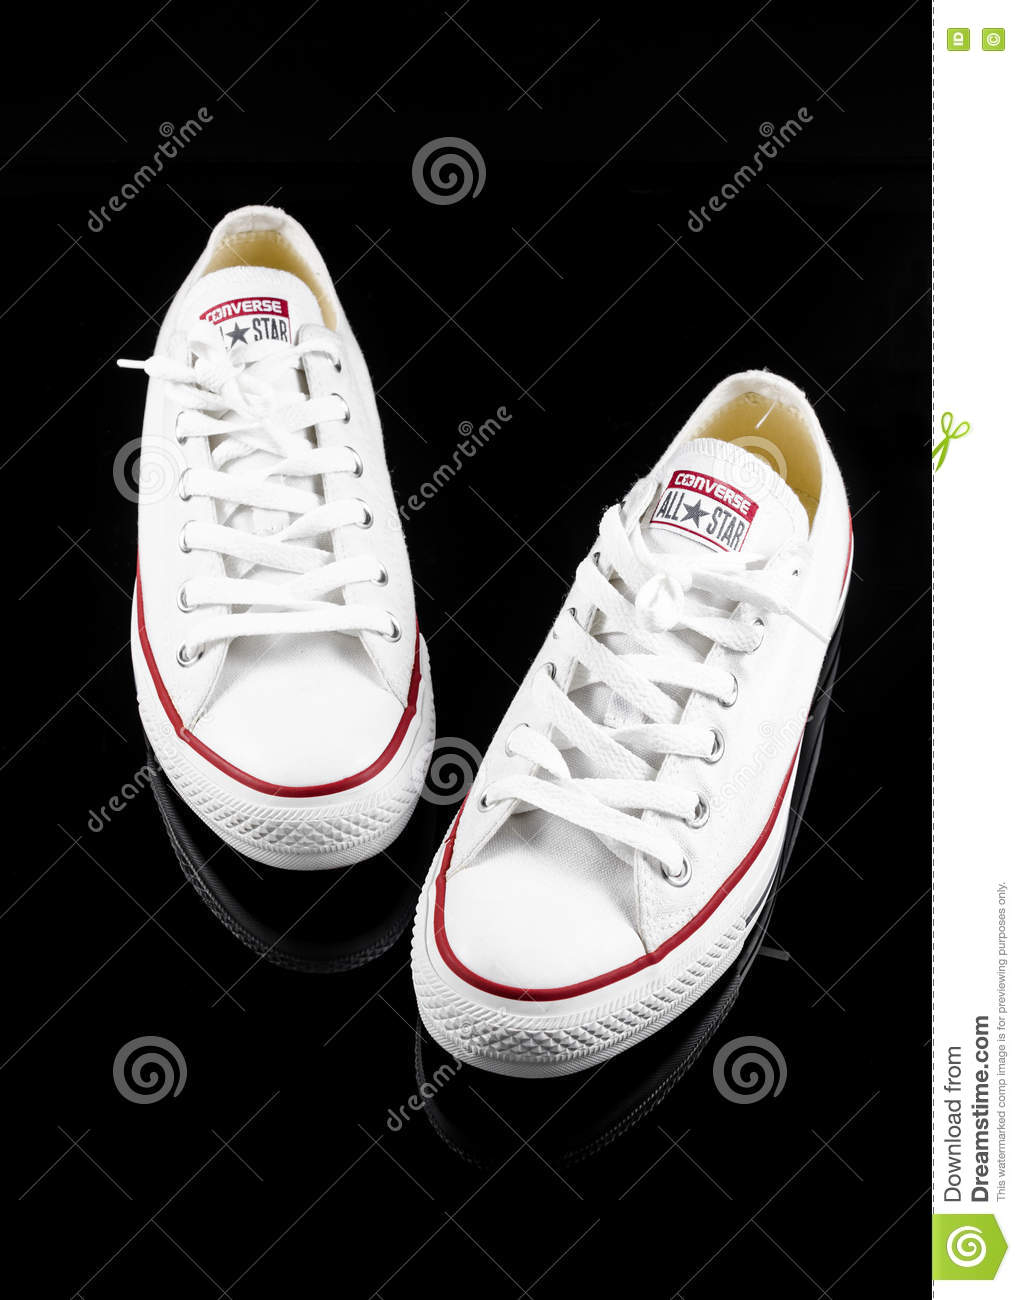 6b0af8197ed3 Converse All Star White Sneakers Editorial Stock Photo - Image of ...